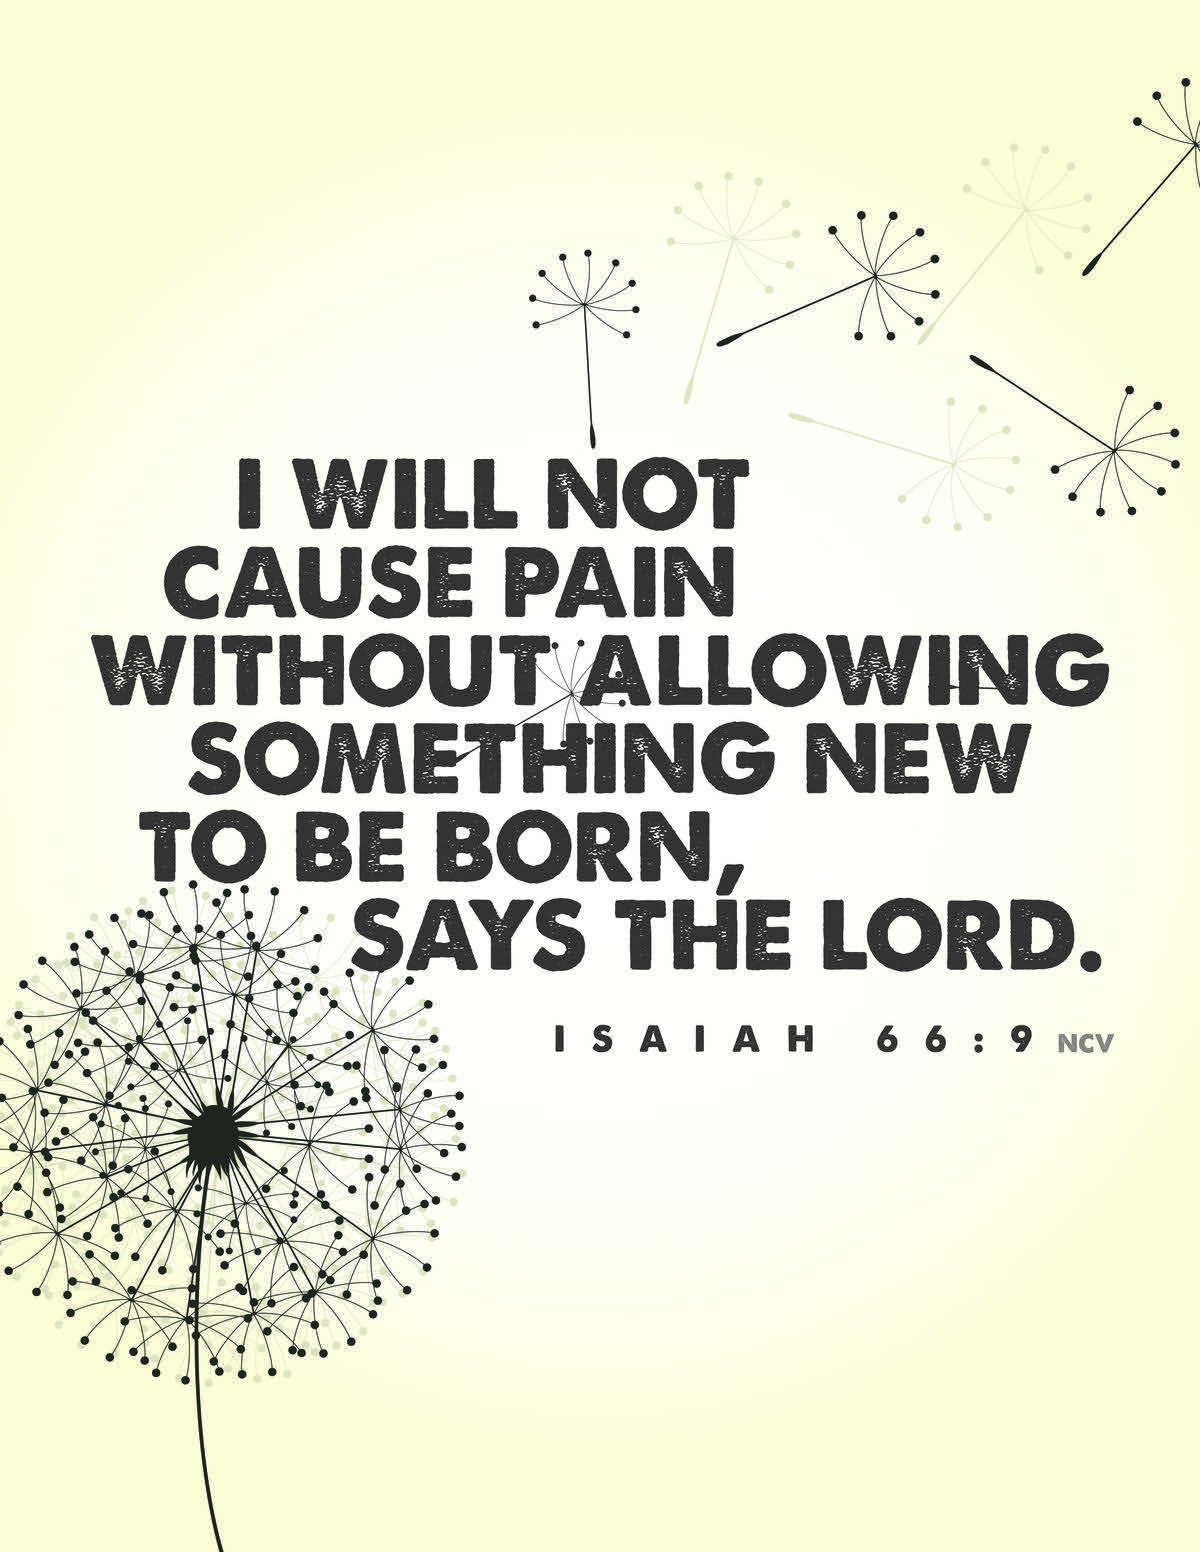 I will not cause pain without allowing something new to be born, says the Lord. - Isaiah 66:9